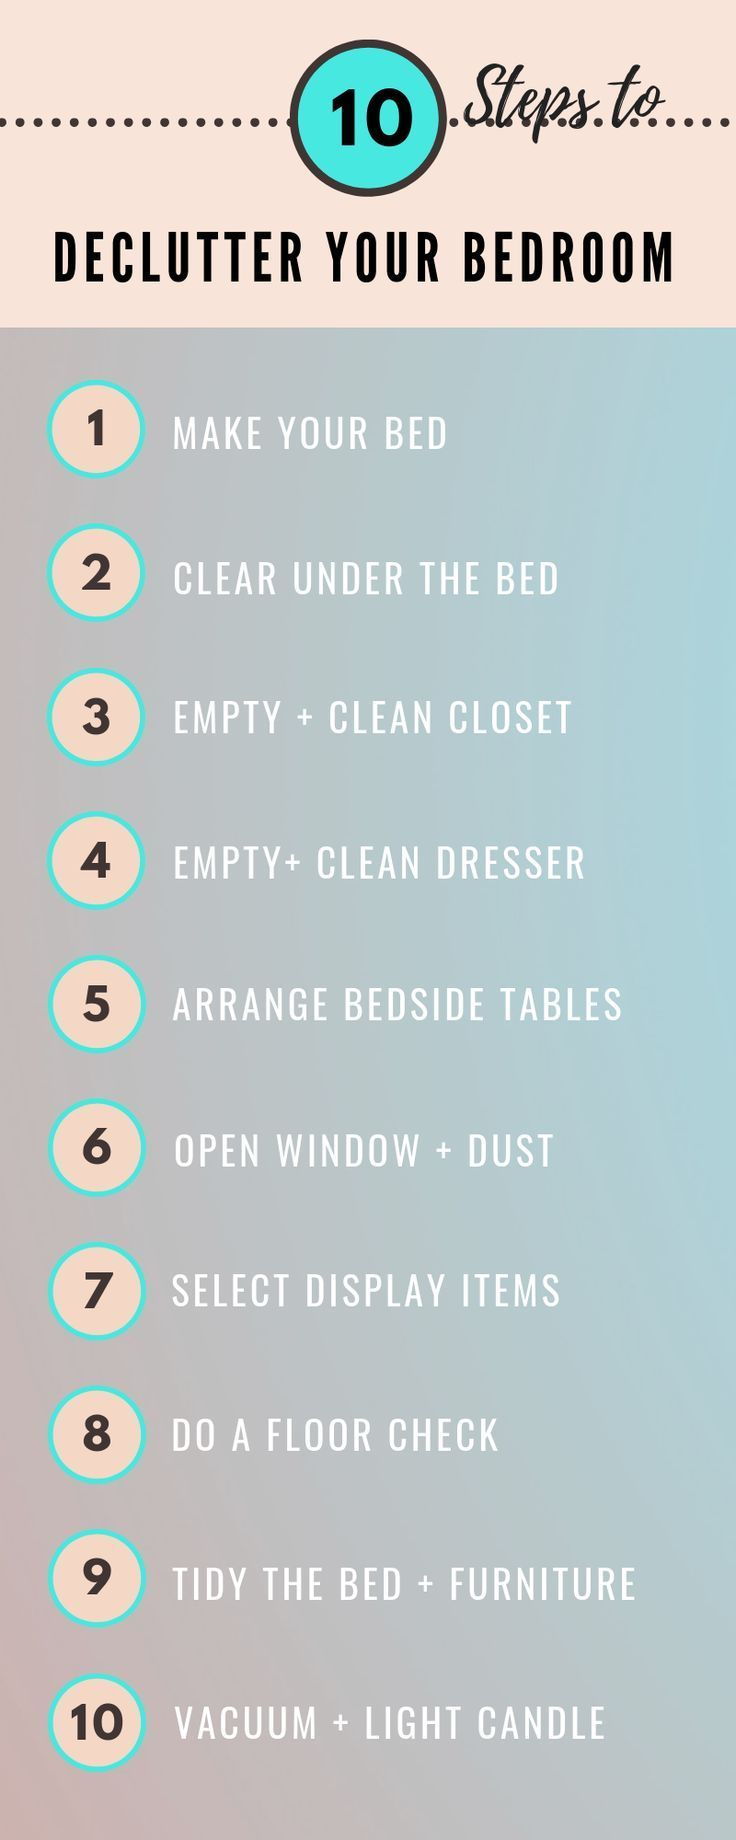 The best way to declutter your bedroom in 10 steps Youll see the very best bedroom decluttering tips